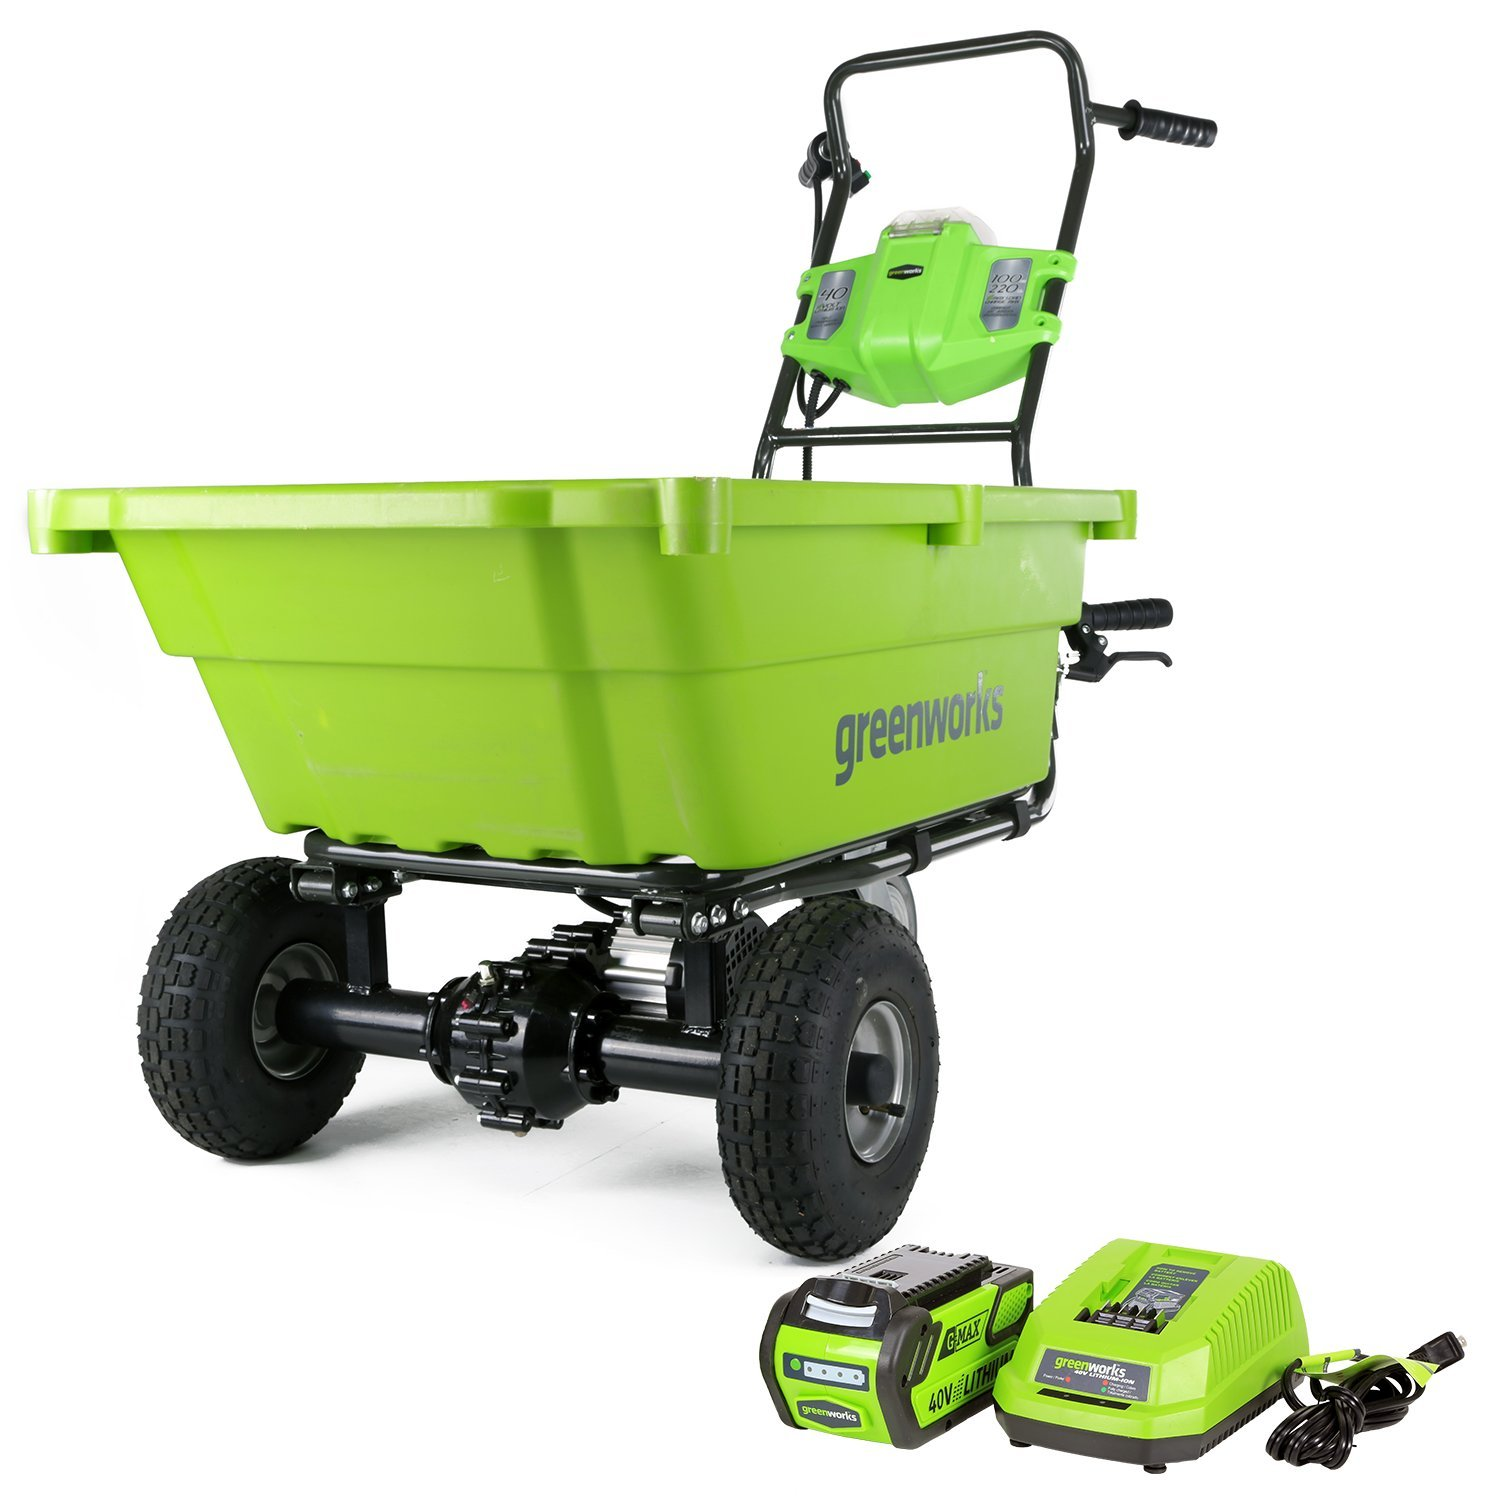 Greenworks GC40L410 40V Garden Cart with 4Ah Battery and Charger by Greenworks